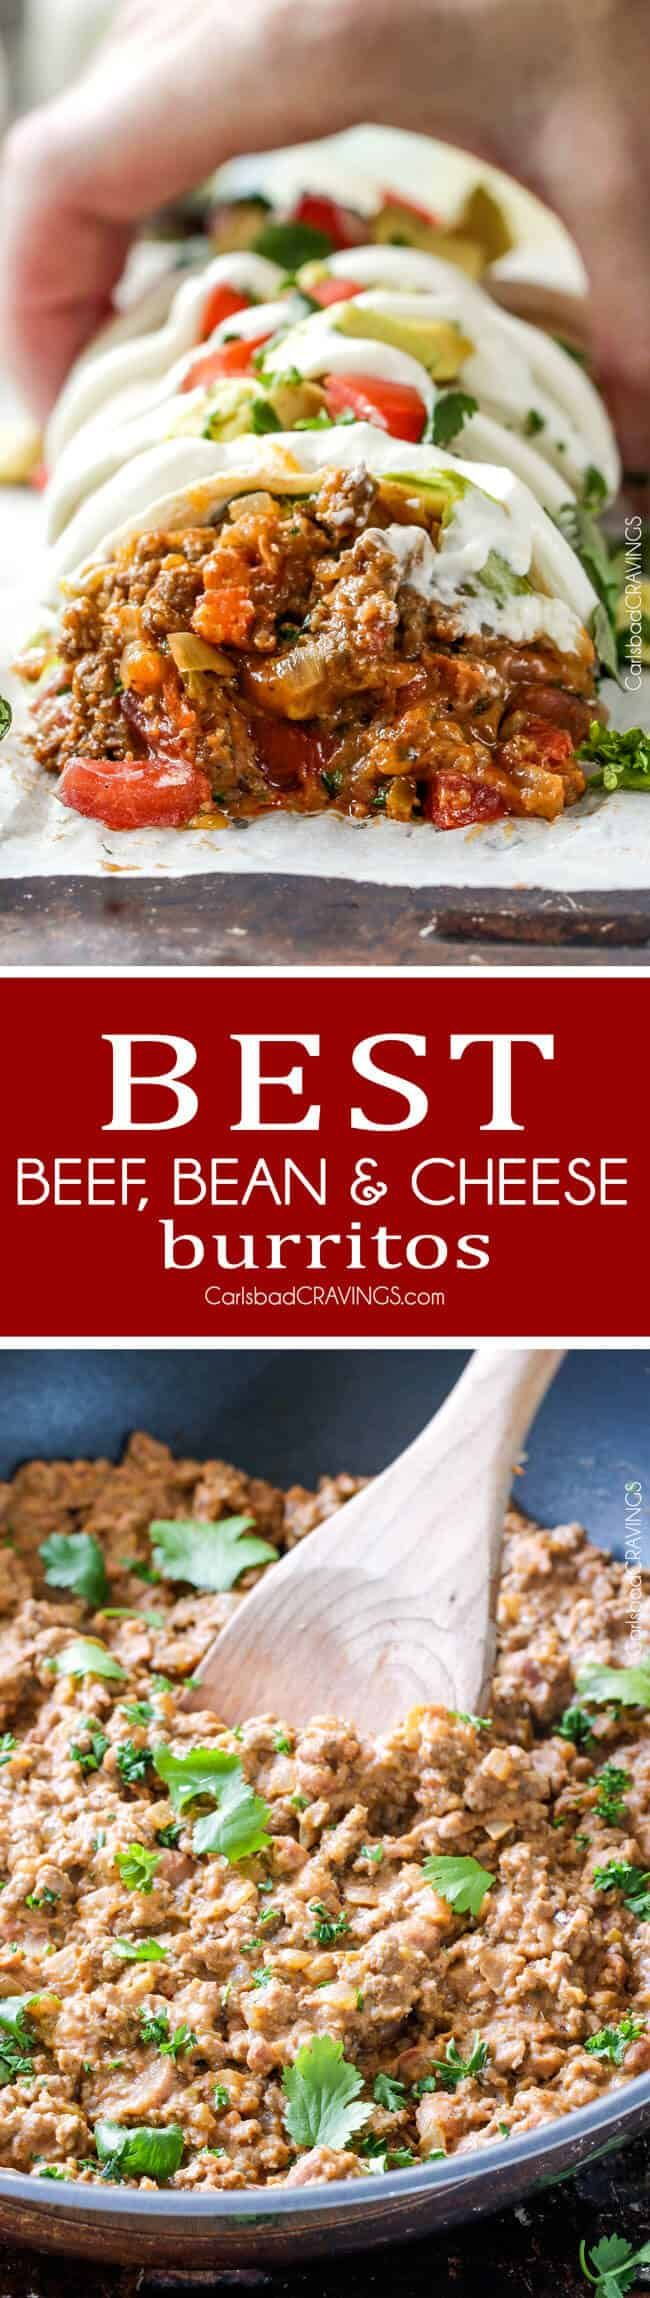 Quick Easy Comforting Inexpensive Beef And Bean Burritos Stuffed With The Best Filling You Will Be Eating With A Spoo Beef Recipes Mexican Food Recipes Food